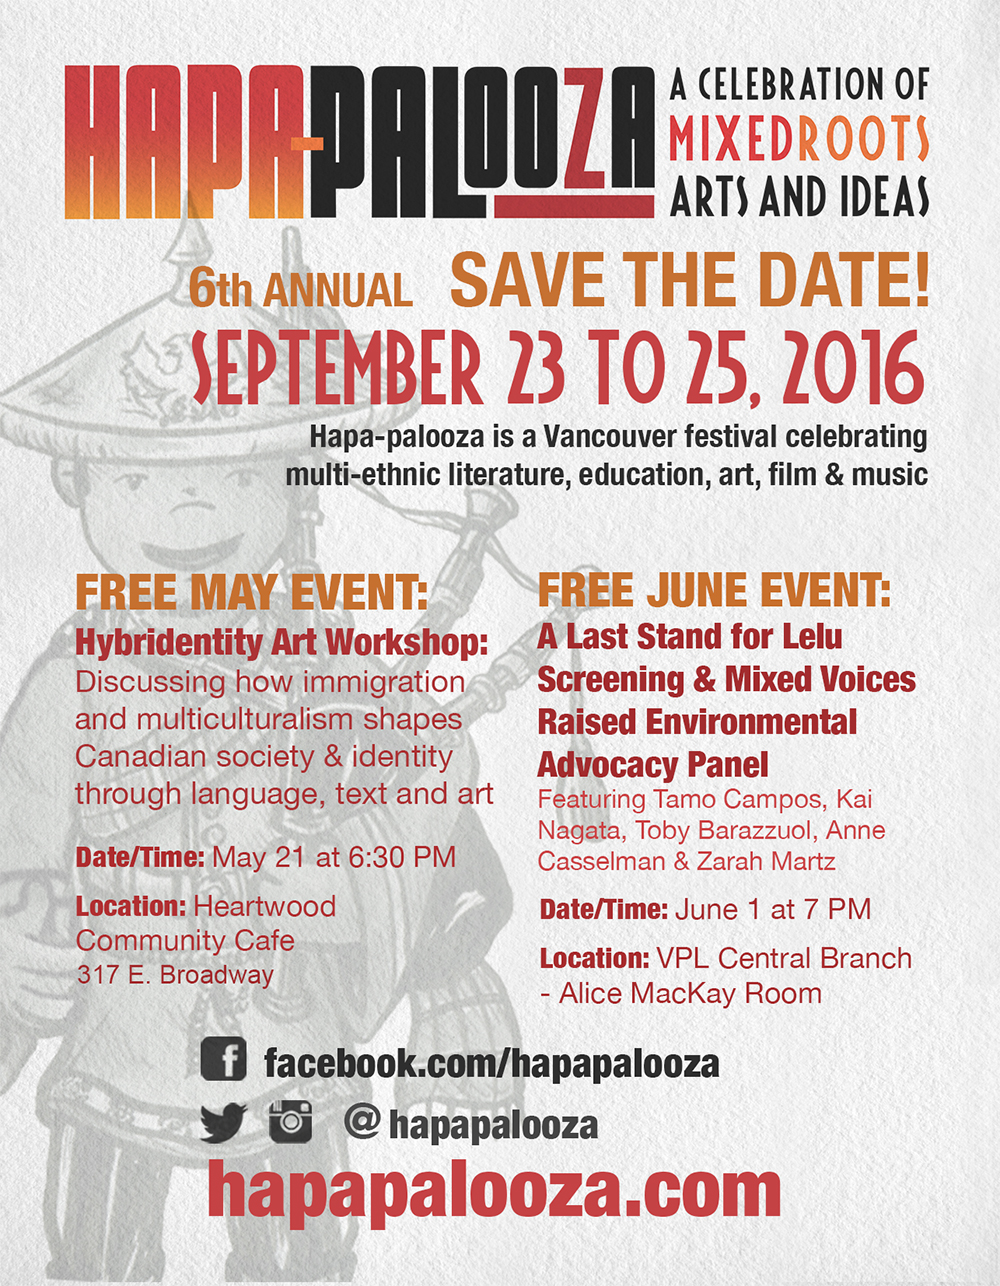 Hapa-palooza 2016 Save the Date